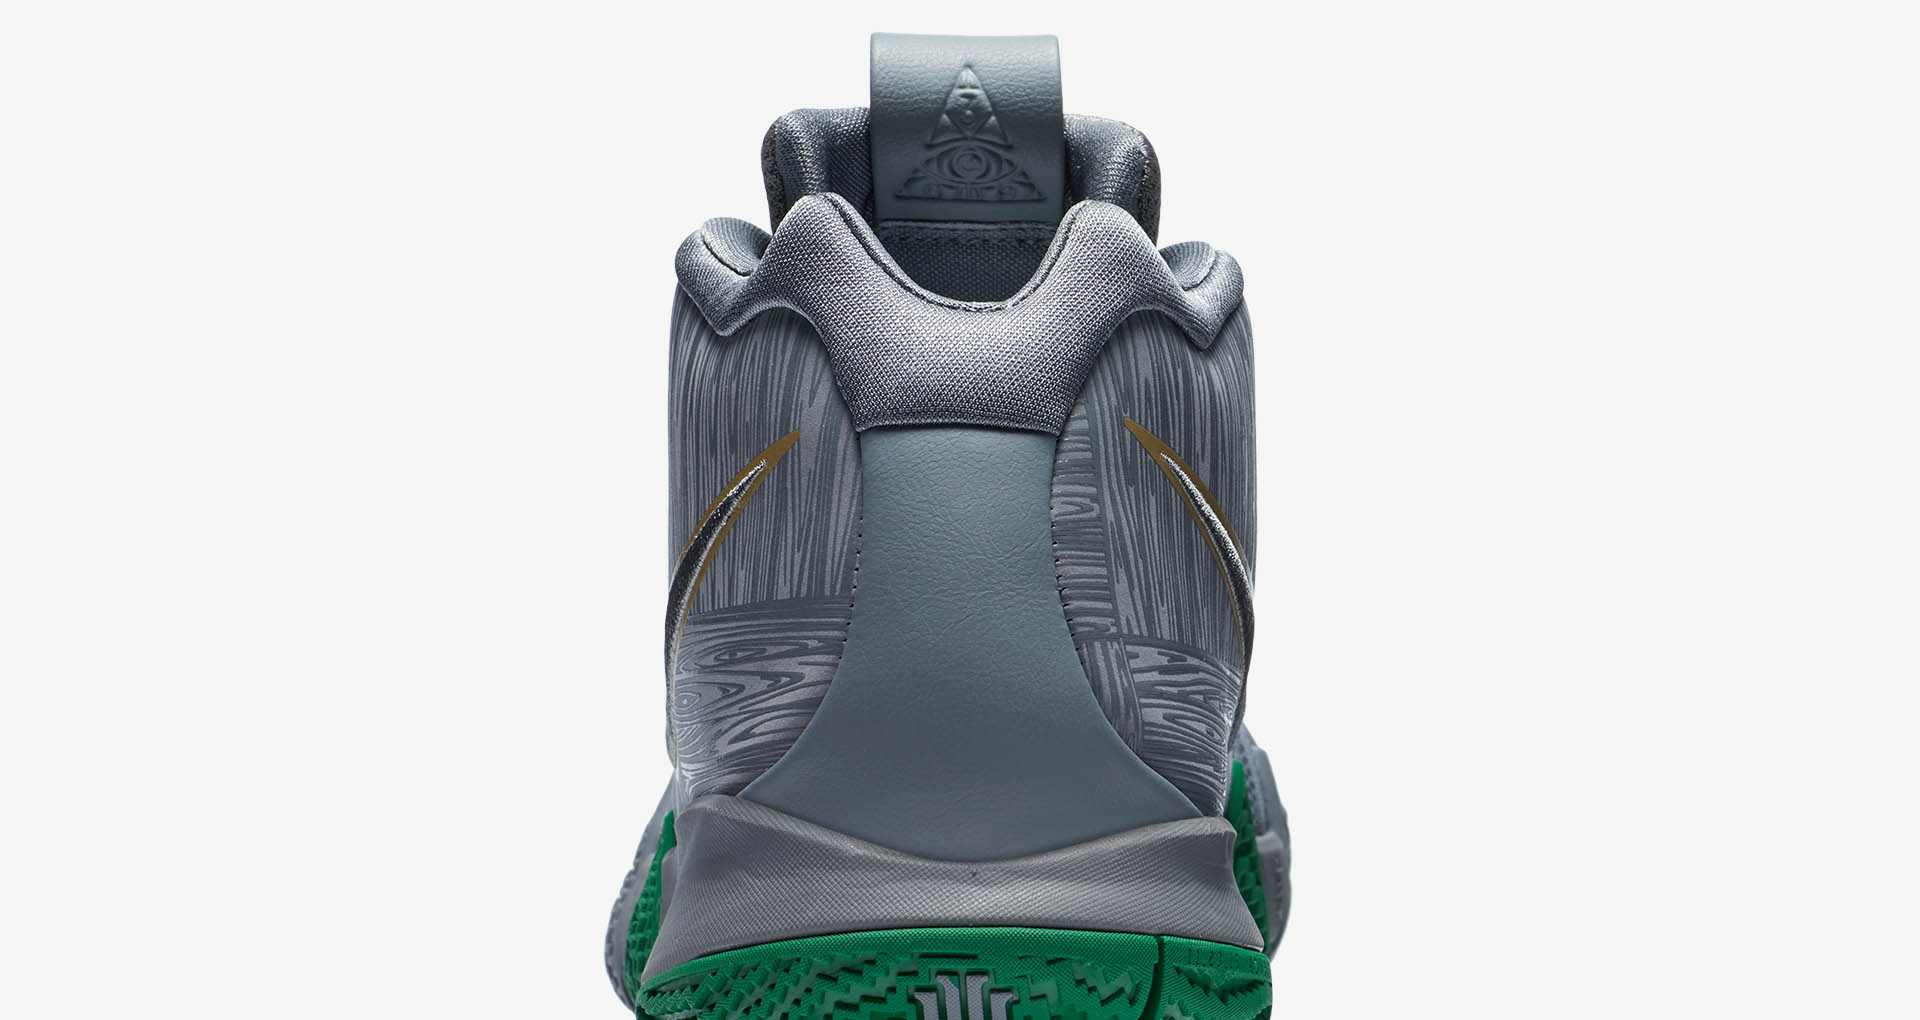 09-nike-kyrie-4-city-of-guardians-943806-001